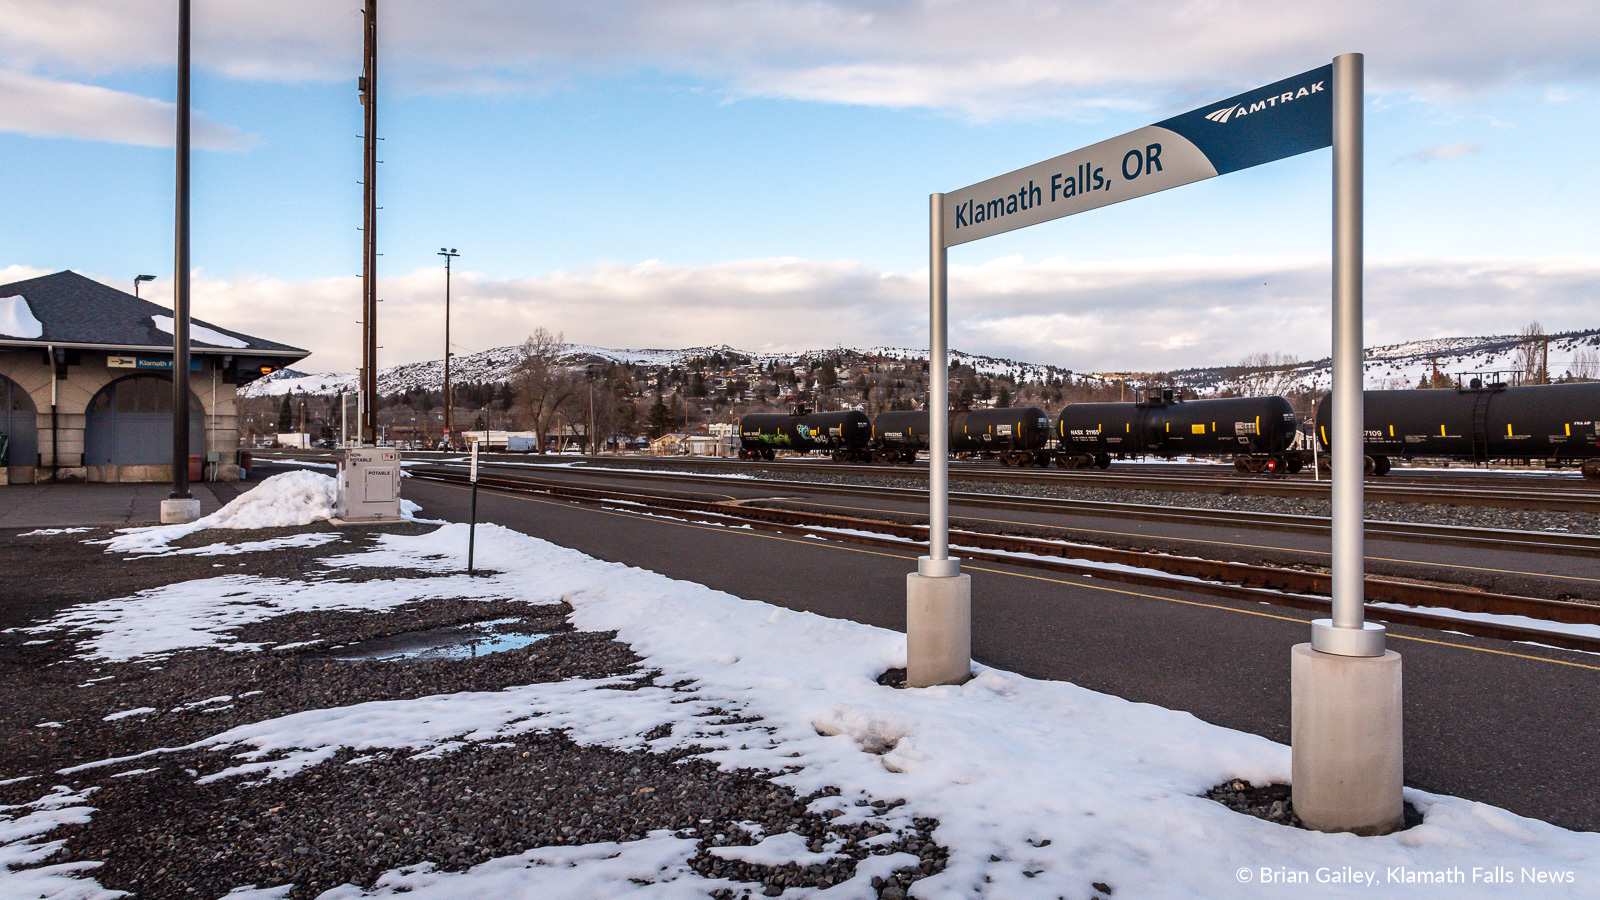 The Klamath Falls Station is empty and quiet with no Amtrak service for over a week. March 1, 2019 (Brian Gailey / Klamath Falls News)